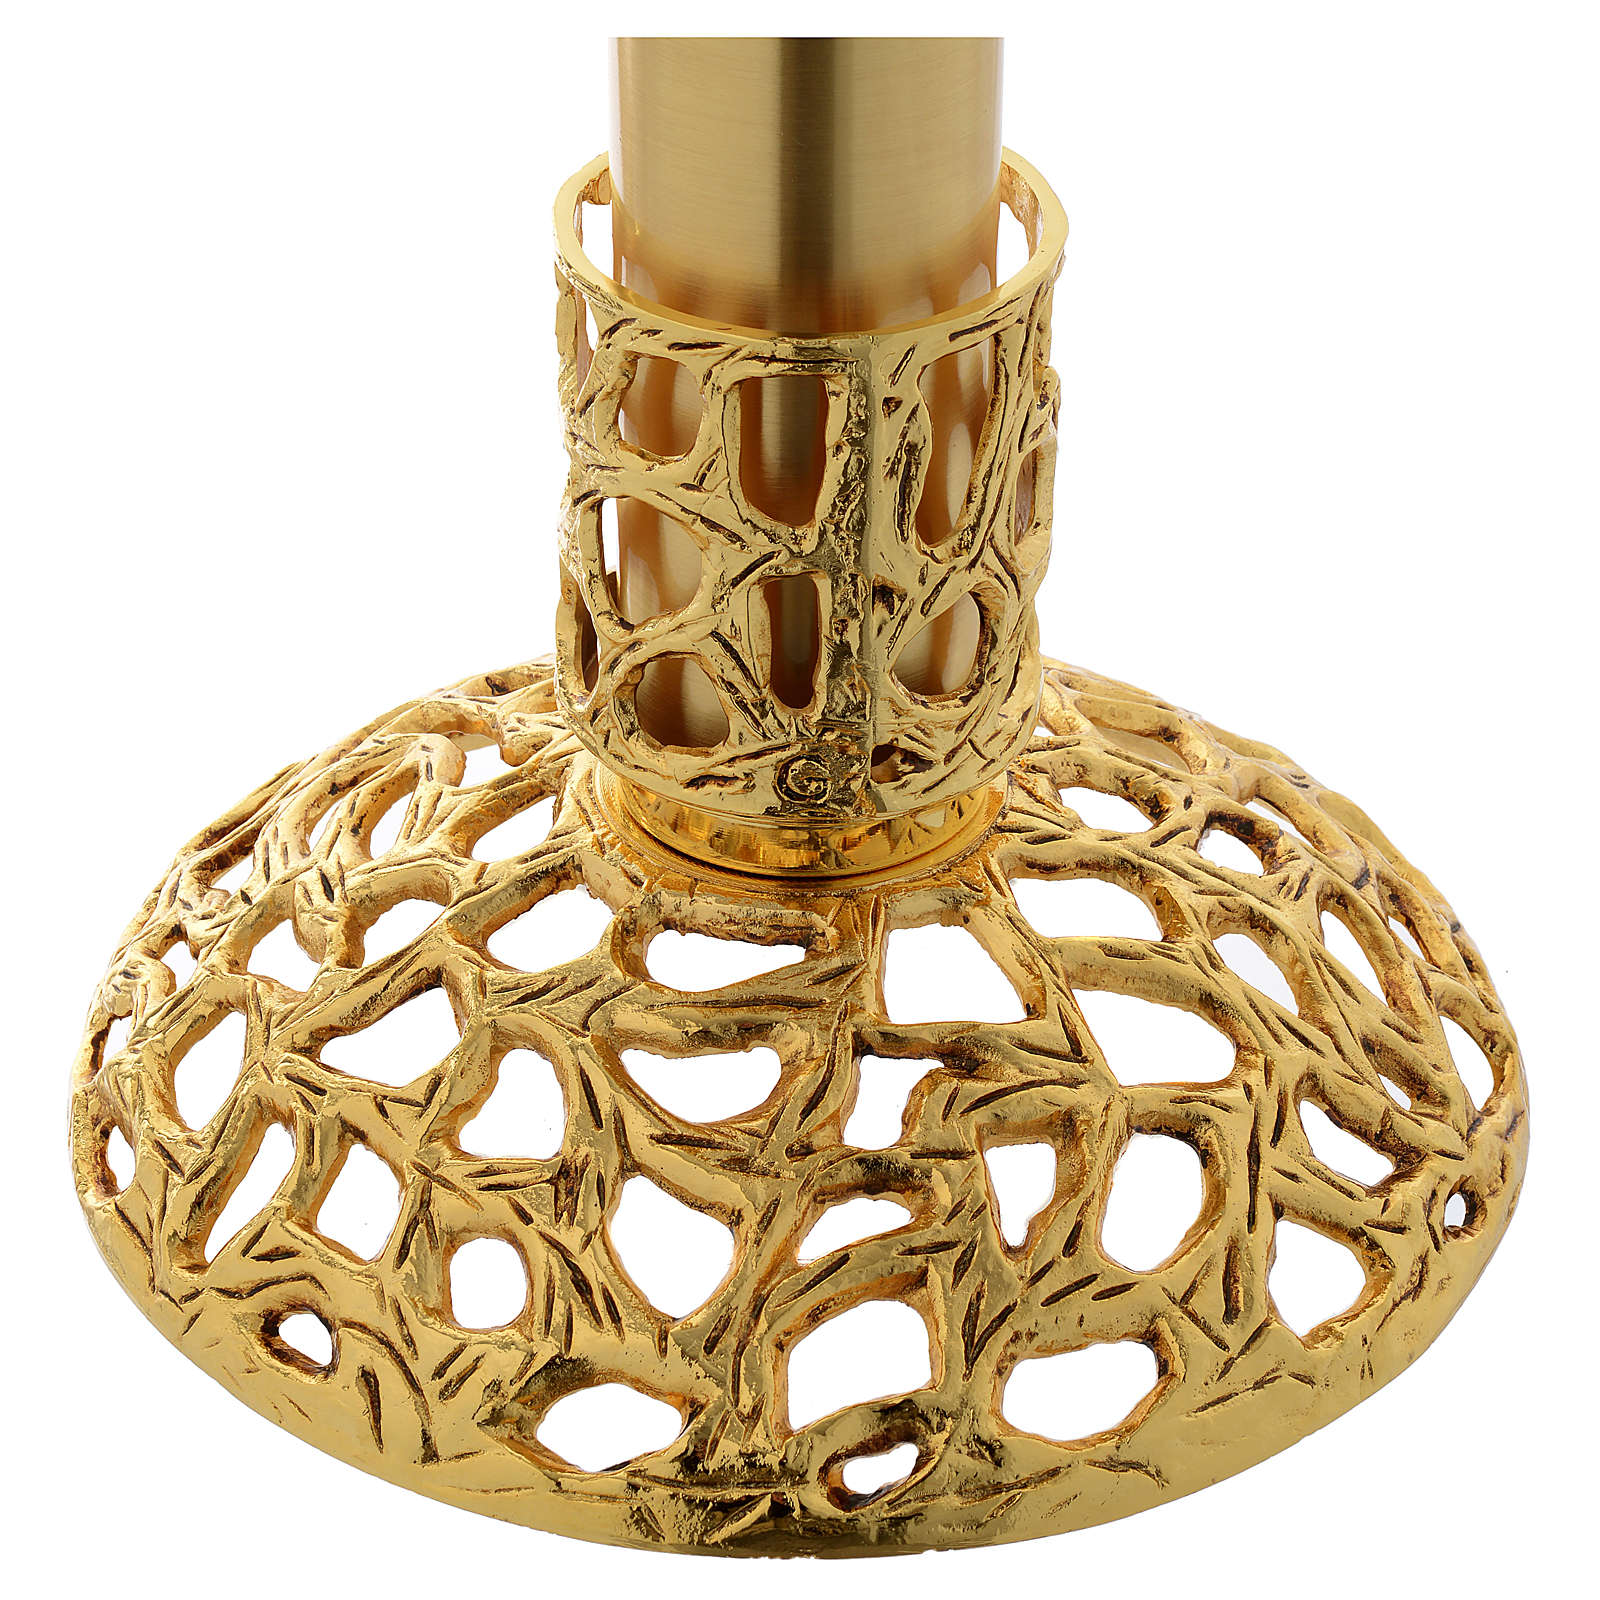 Blessed Sacrament Lamp in gold plated brass 3